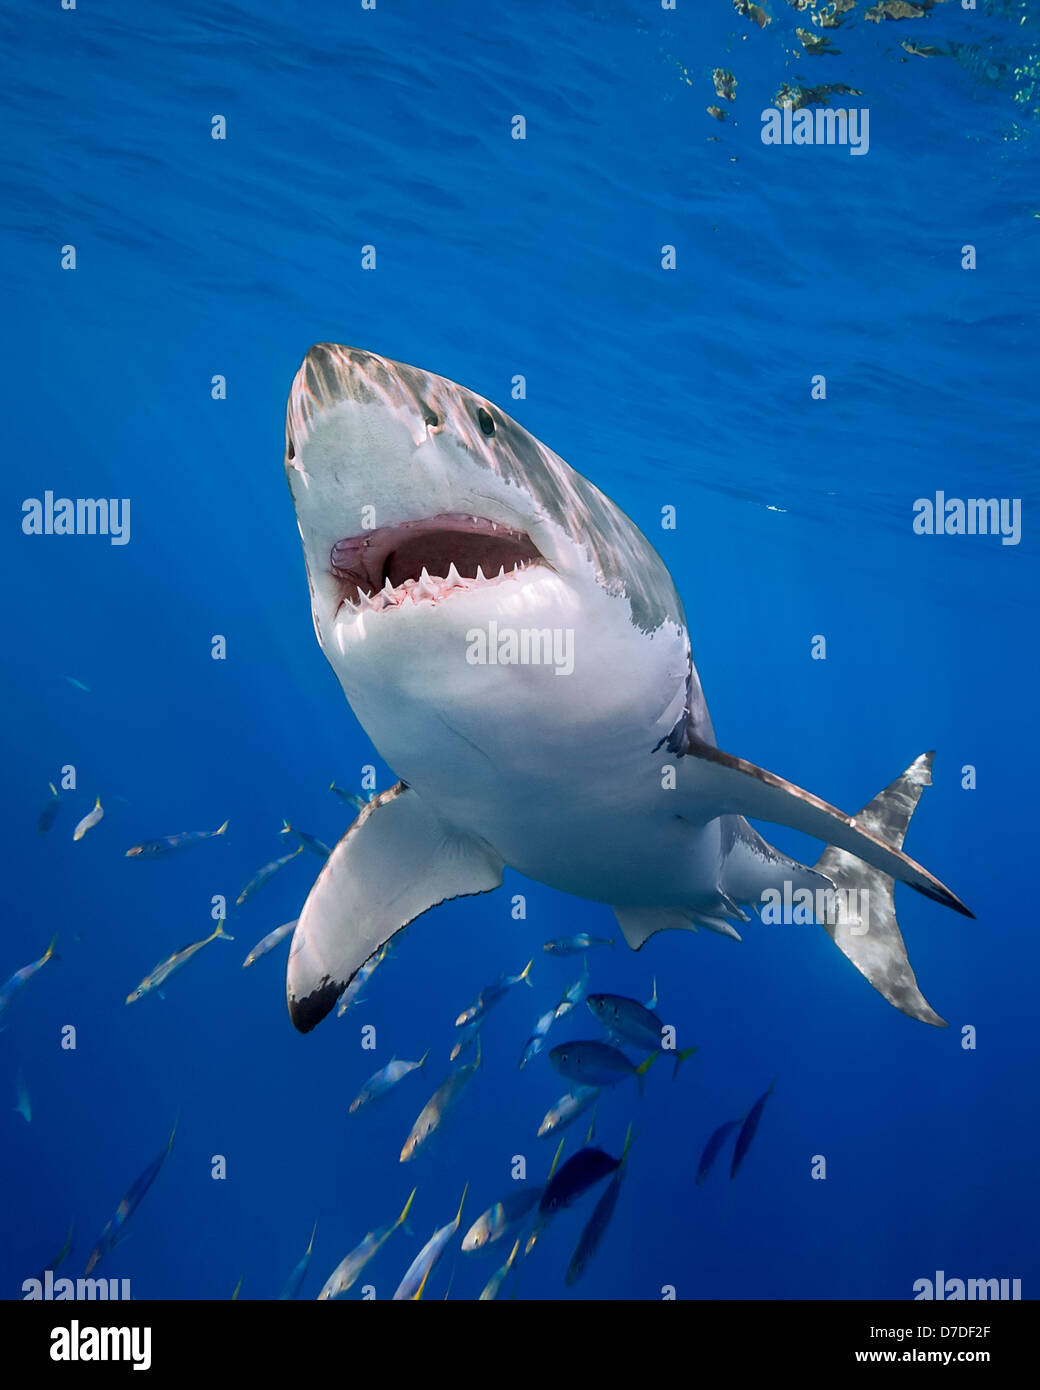 Le grand requin blanc, Carcharodon carcharias, l'île de Guadalupe, Mexique Photo Stock